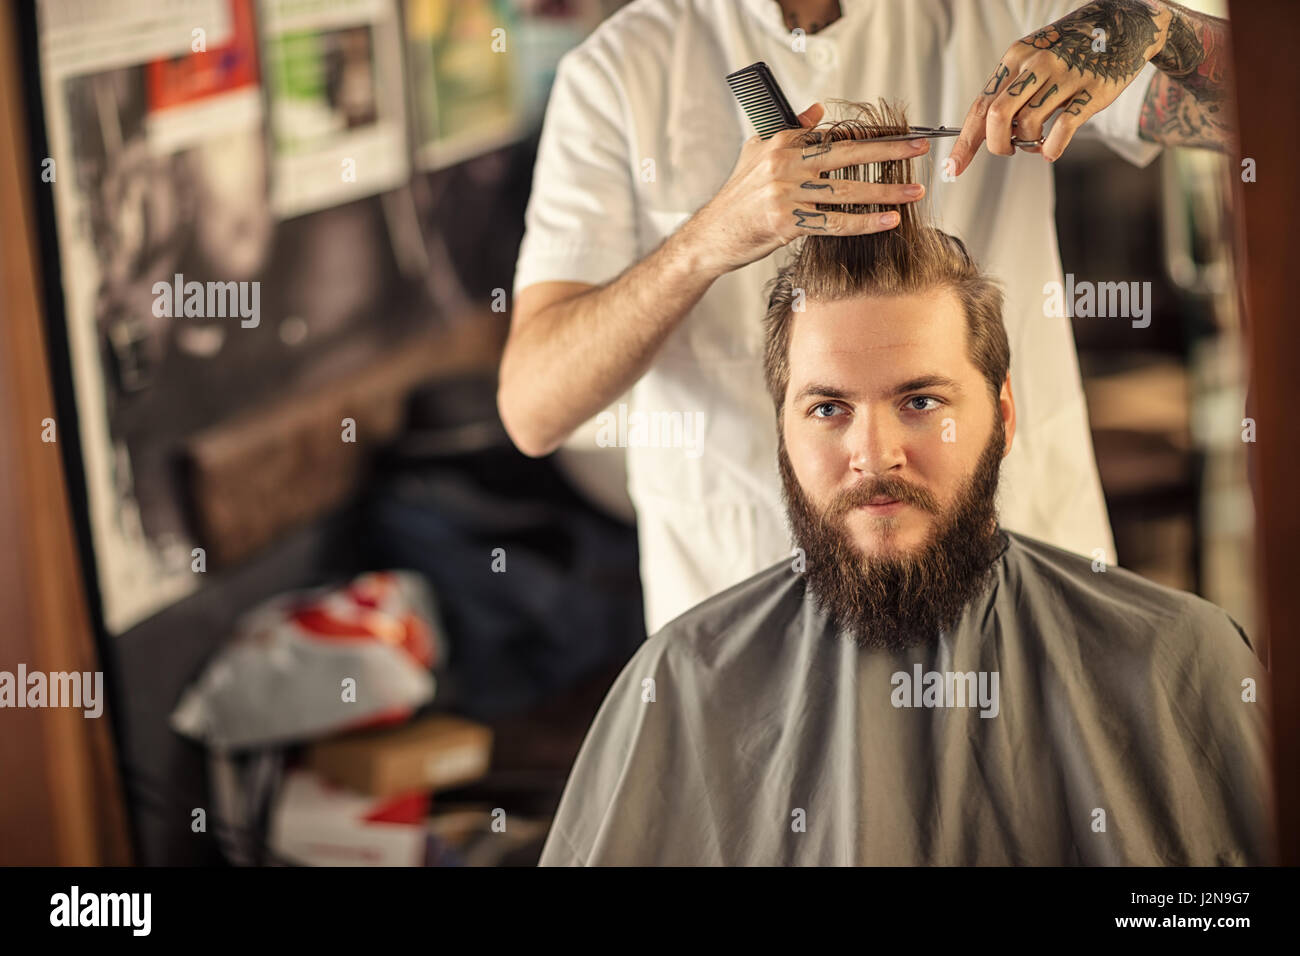 Haircut by a professional hairdresser with scissors - Stock Image